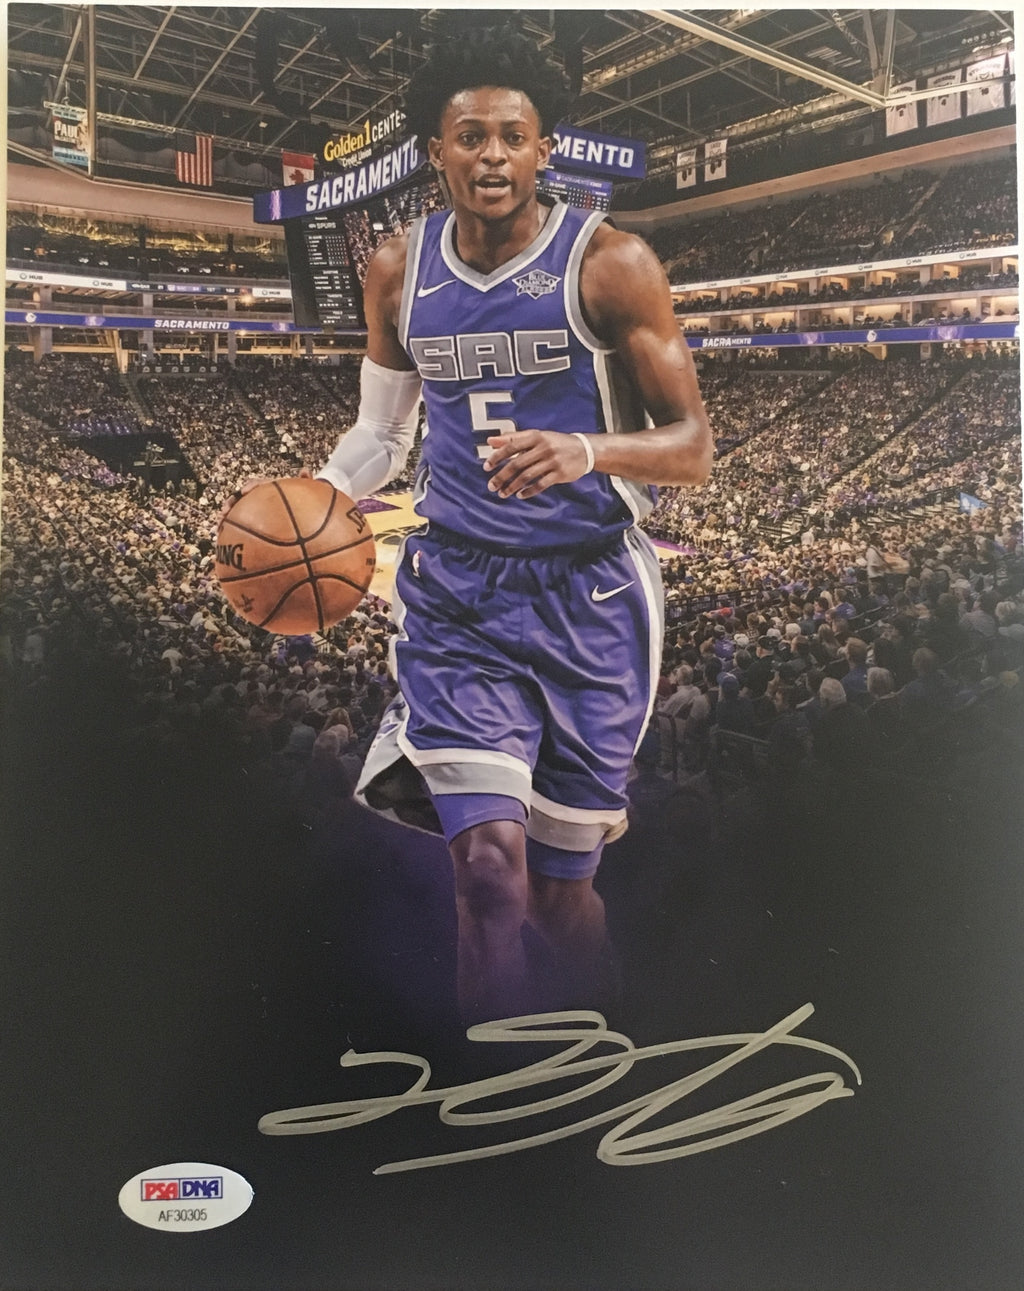 De'Aaron Fox Sacramento Kings Authentic Autographed 8x10 Photograph